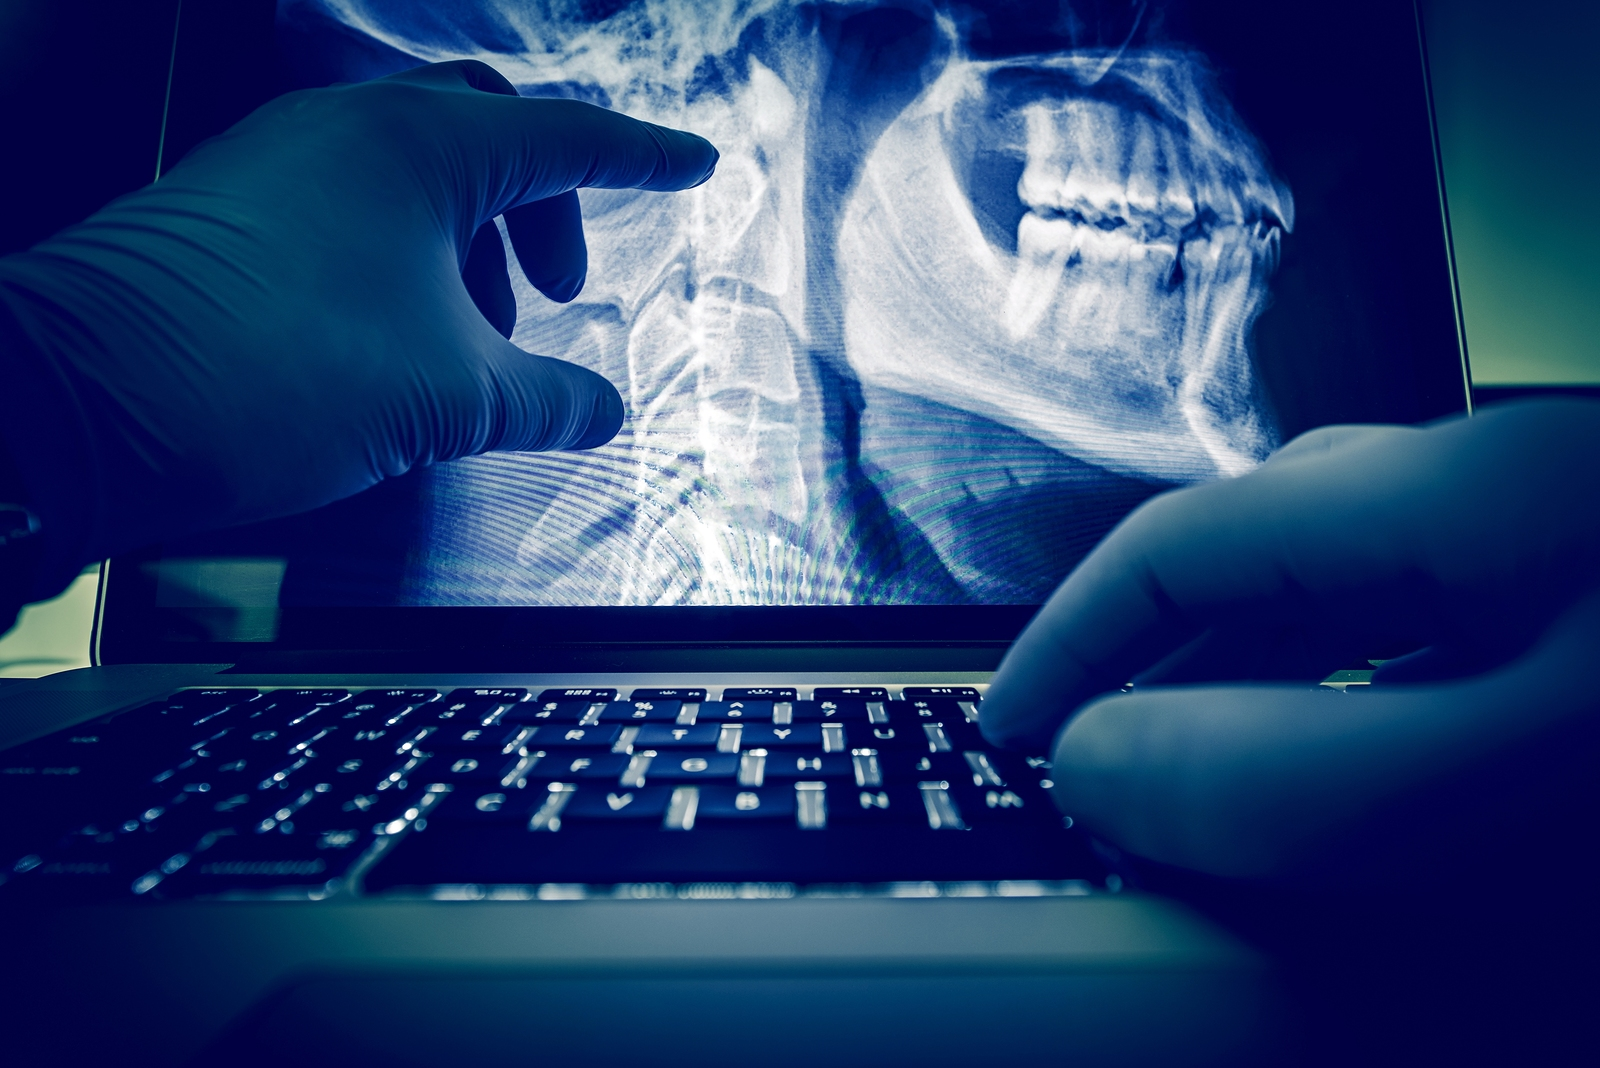 X ray | Student World Online | Chiro